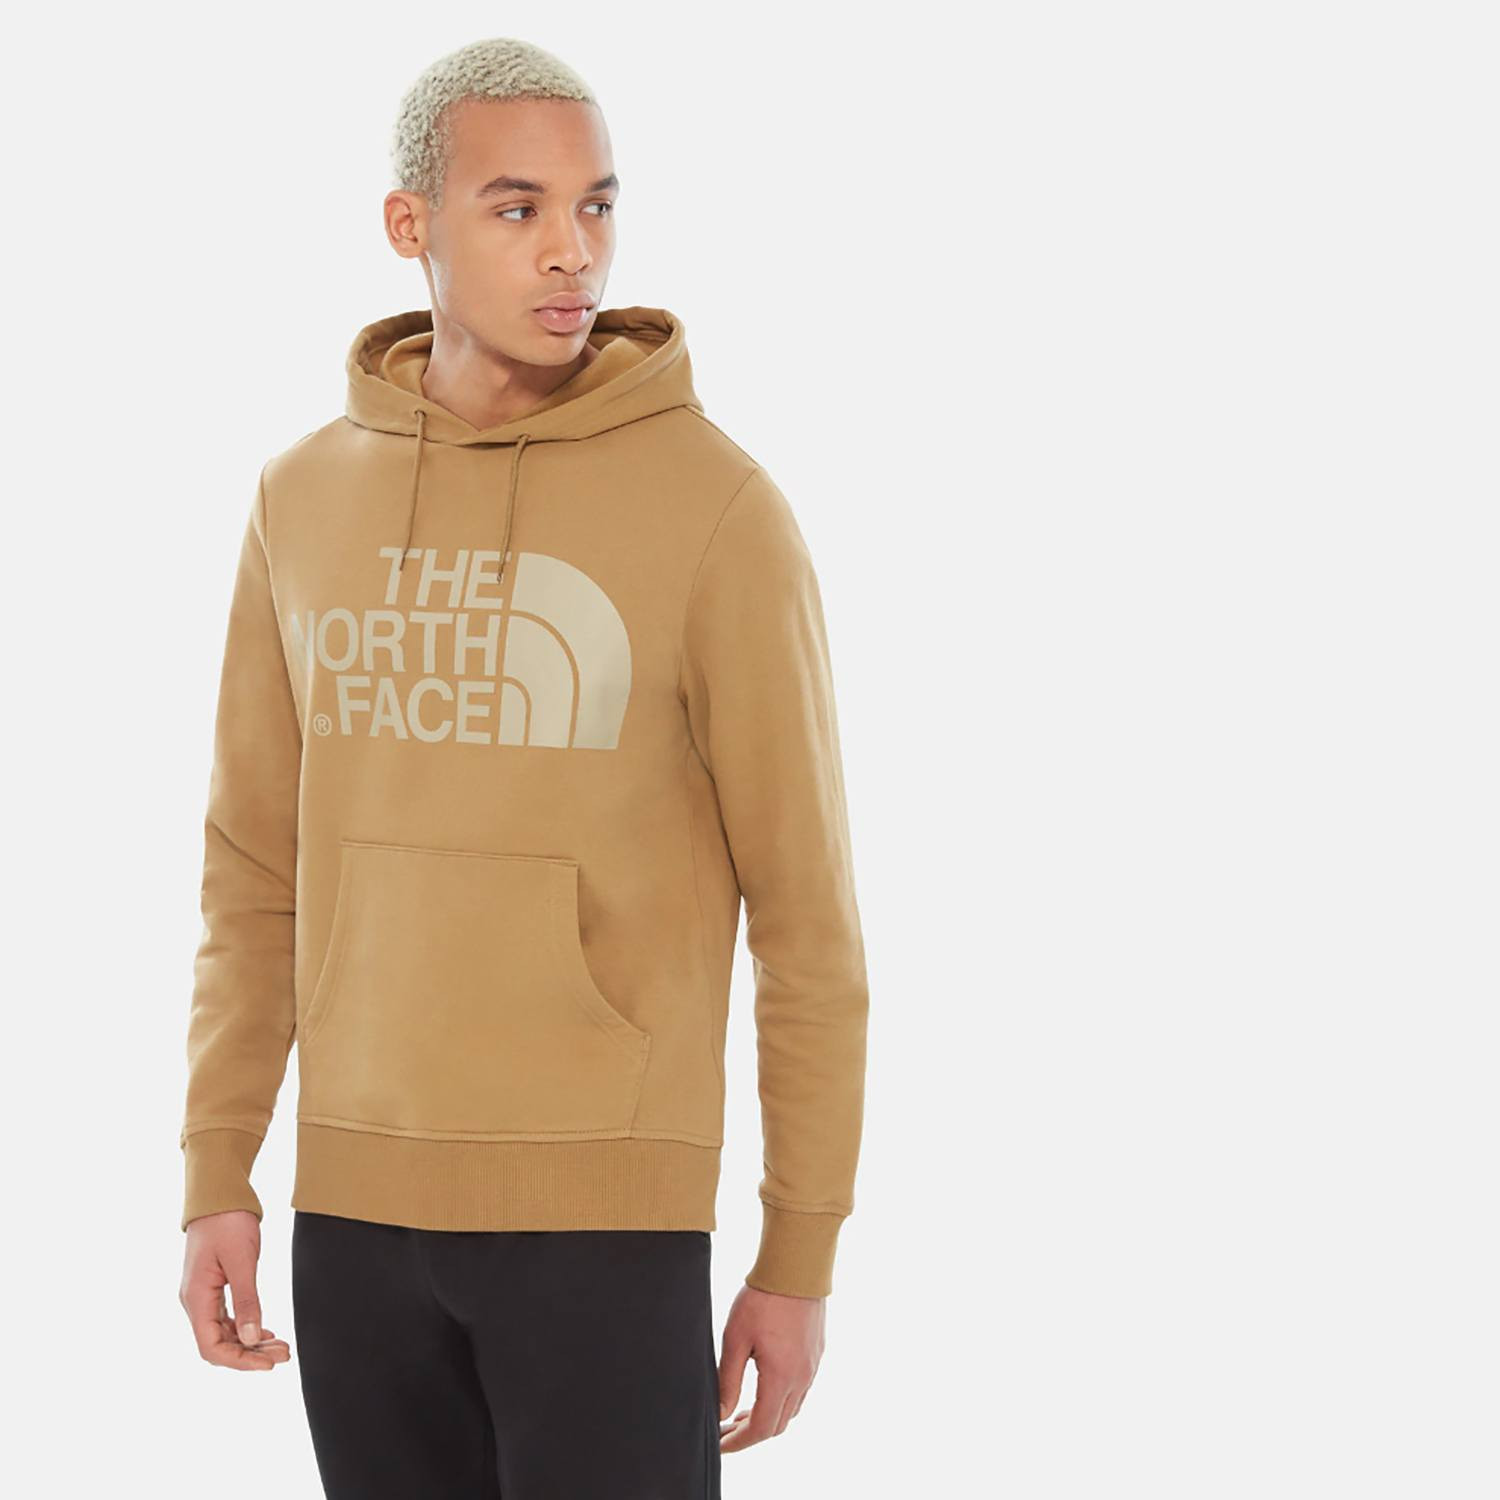 THE NORTH FACE M STANDARD HOODIE (9000036722_19279)